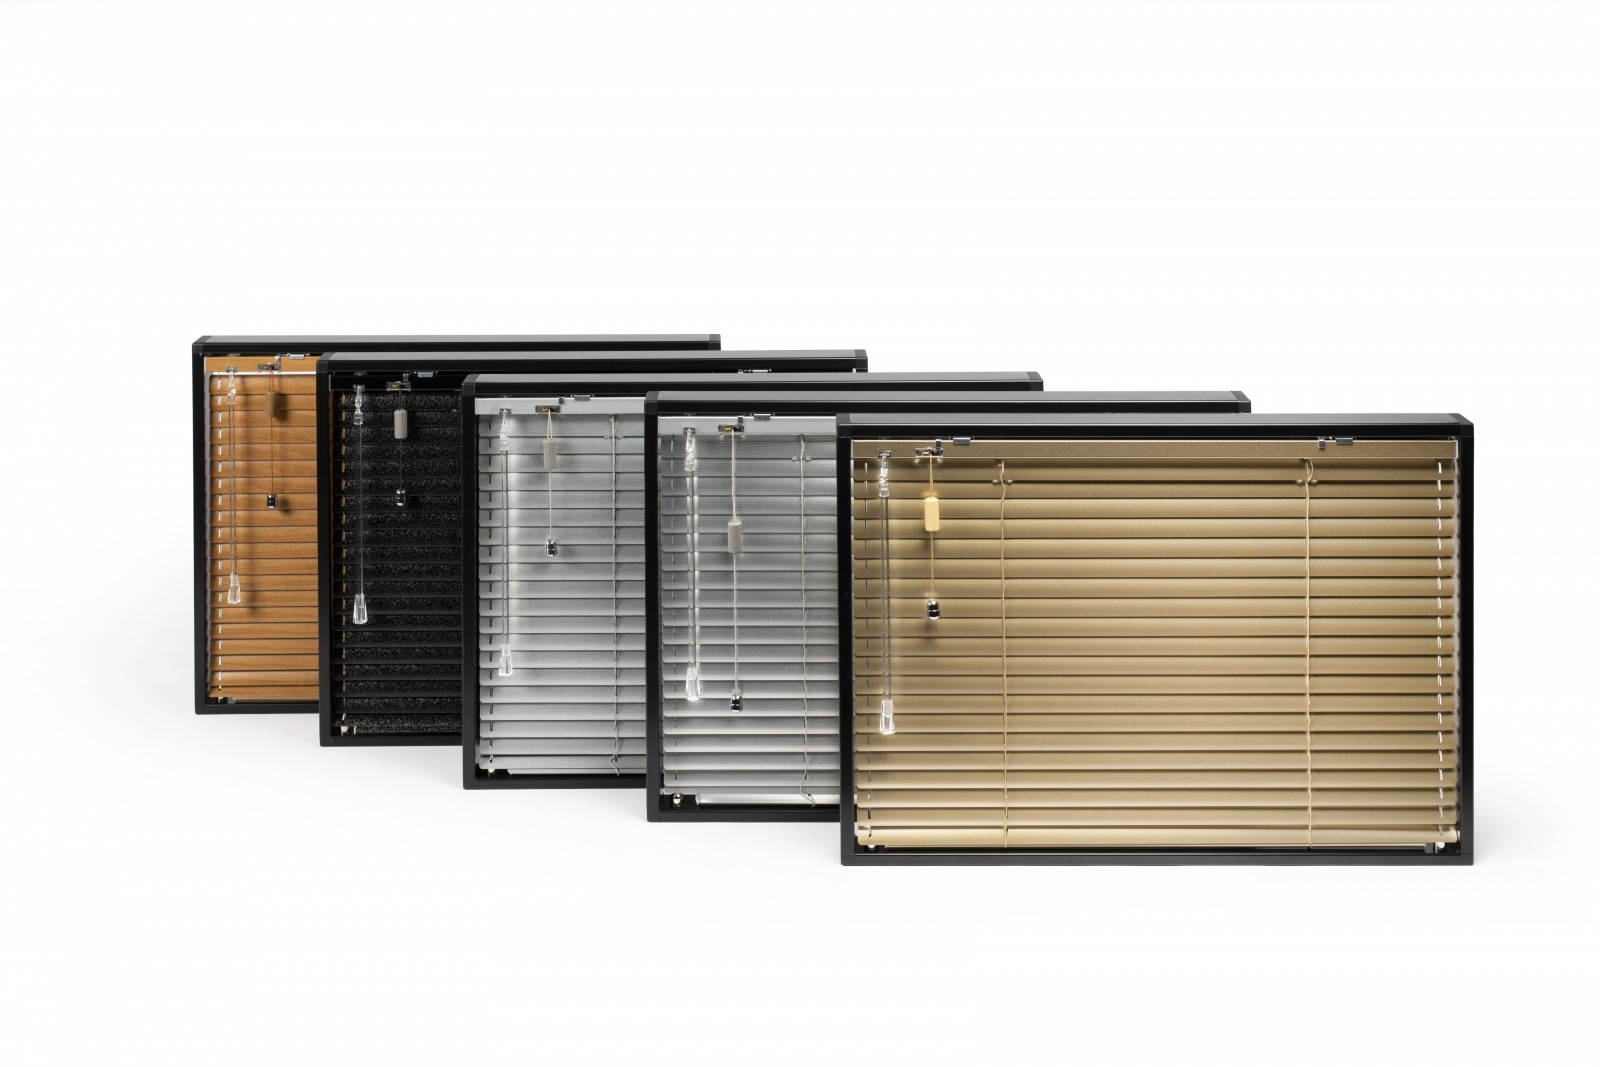 Framed Collection of Solarglide Aluminium Venetian Blind Collection